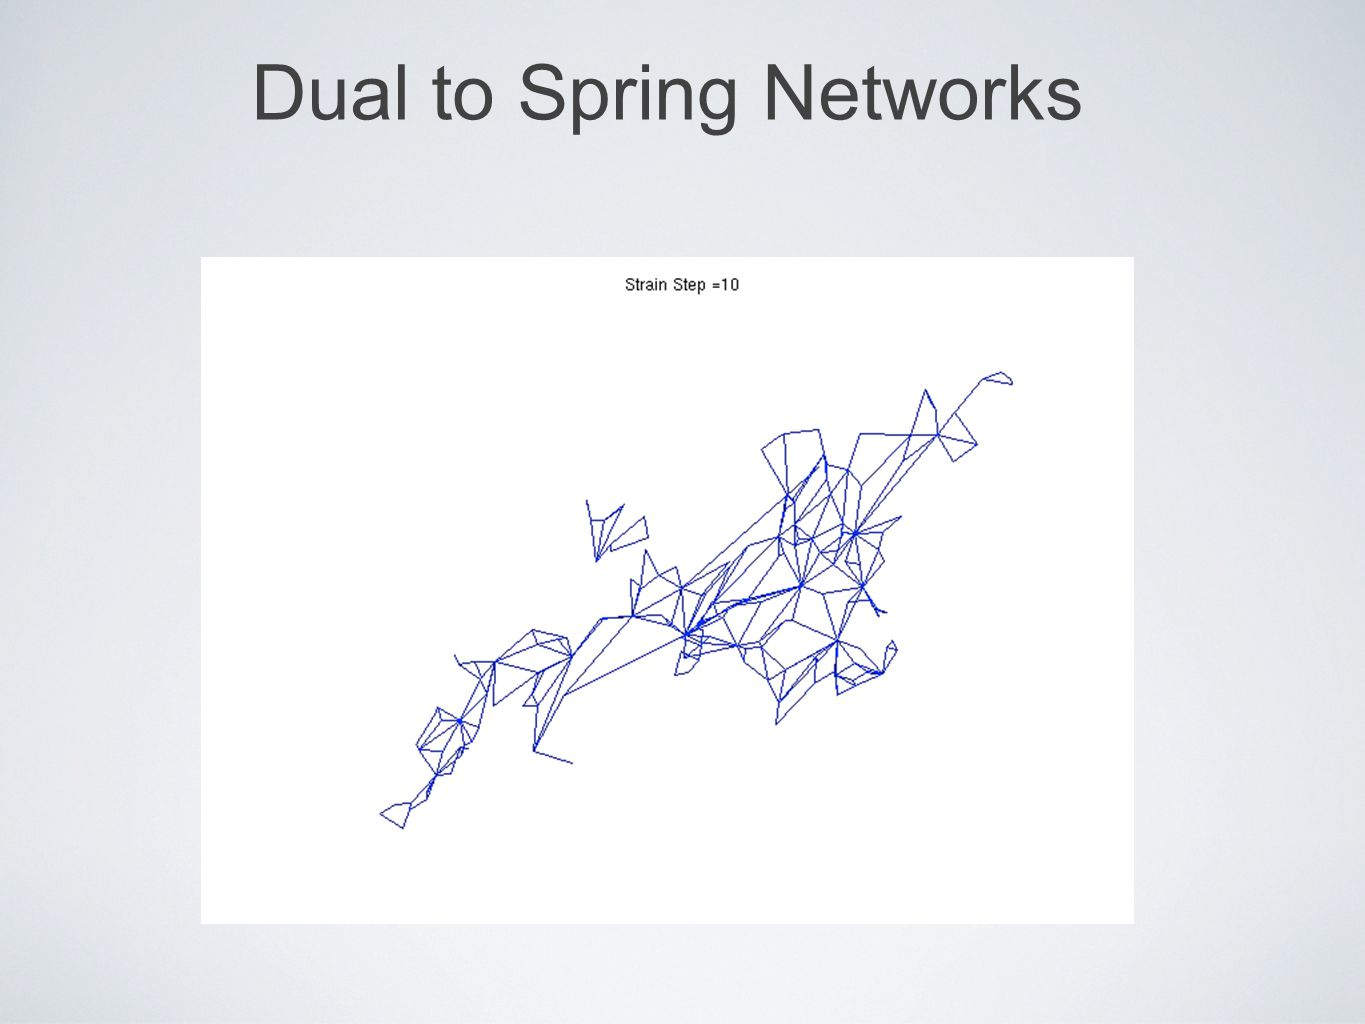 Dual to Spring Networks